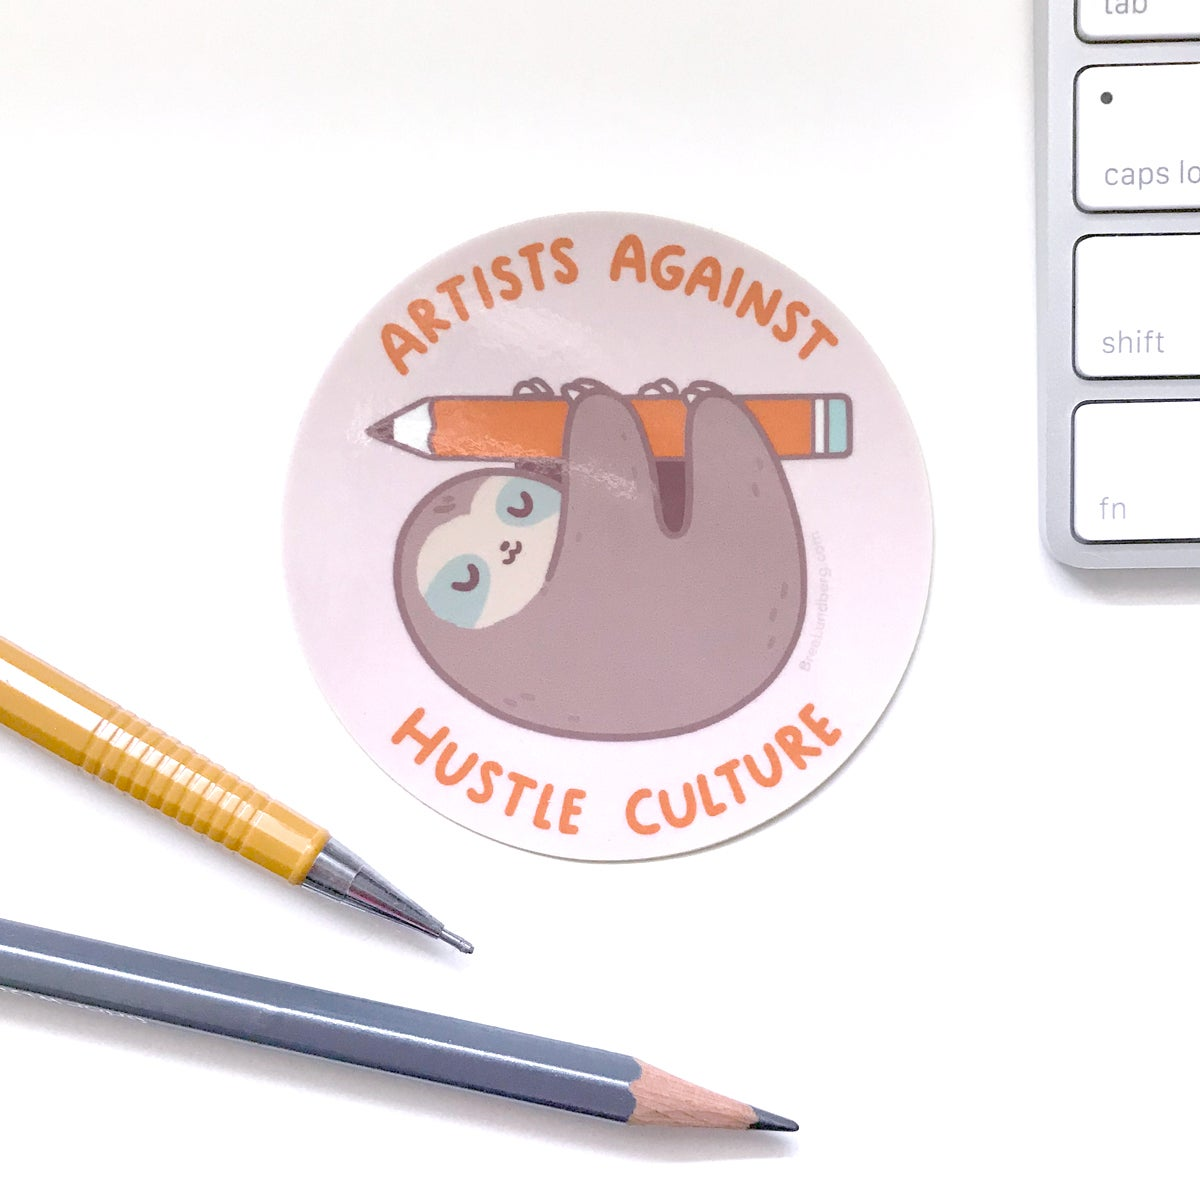 Image of Artists Against Hustle Culture - Sticker